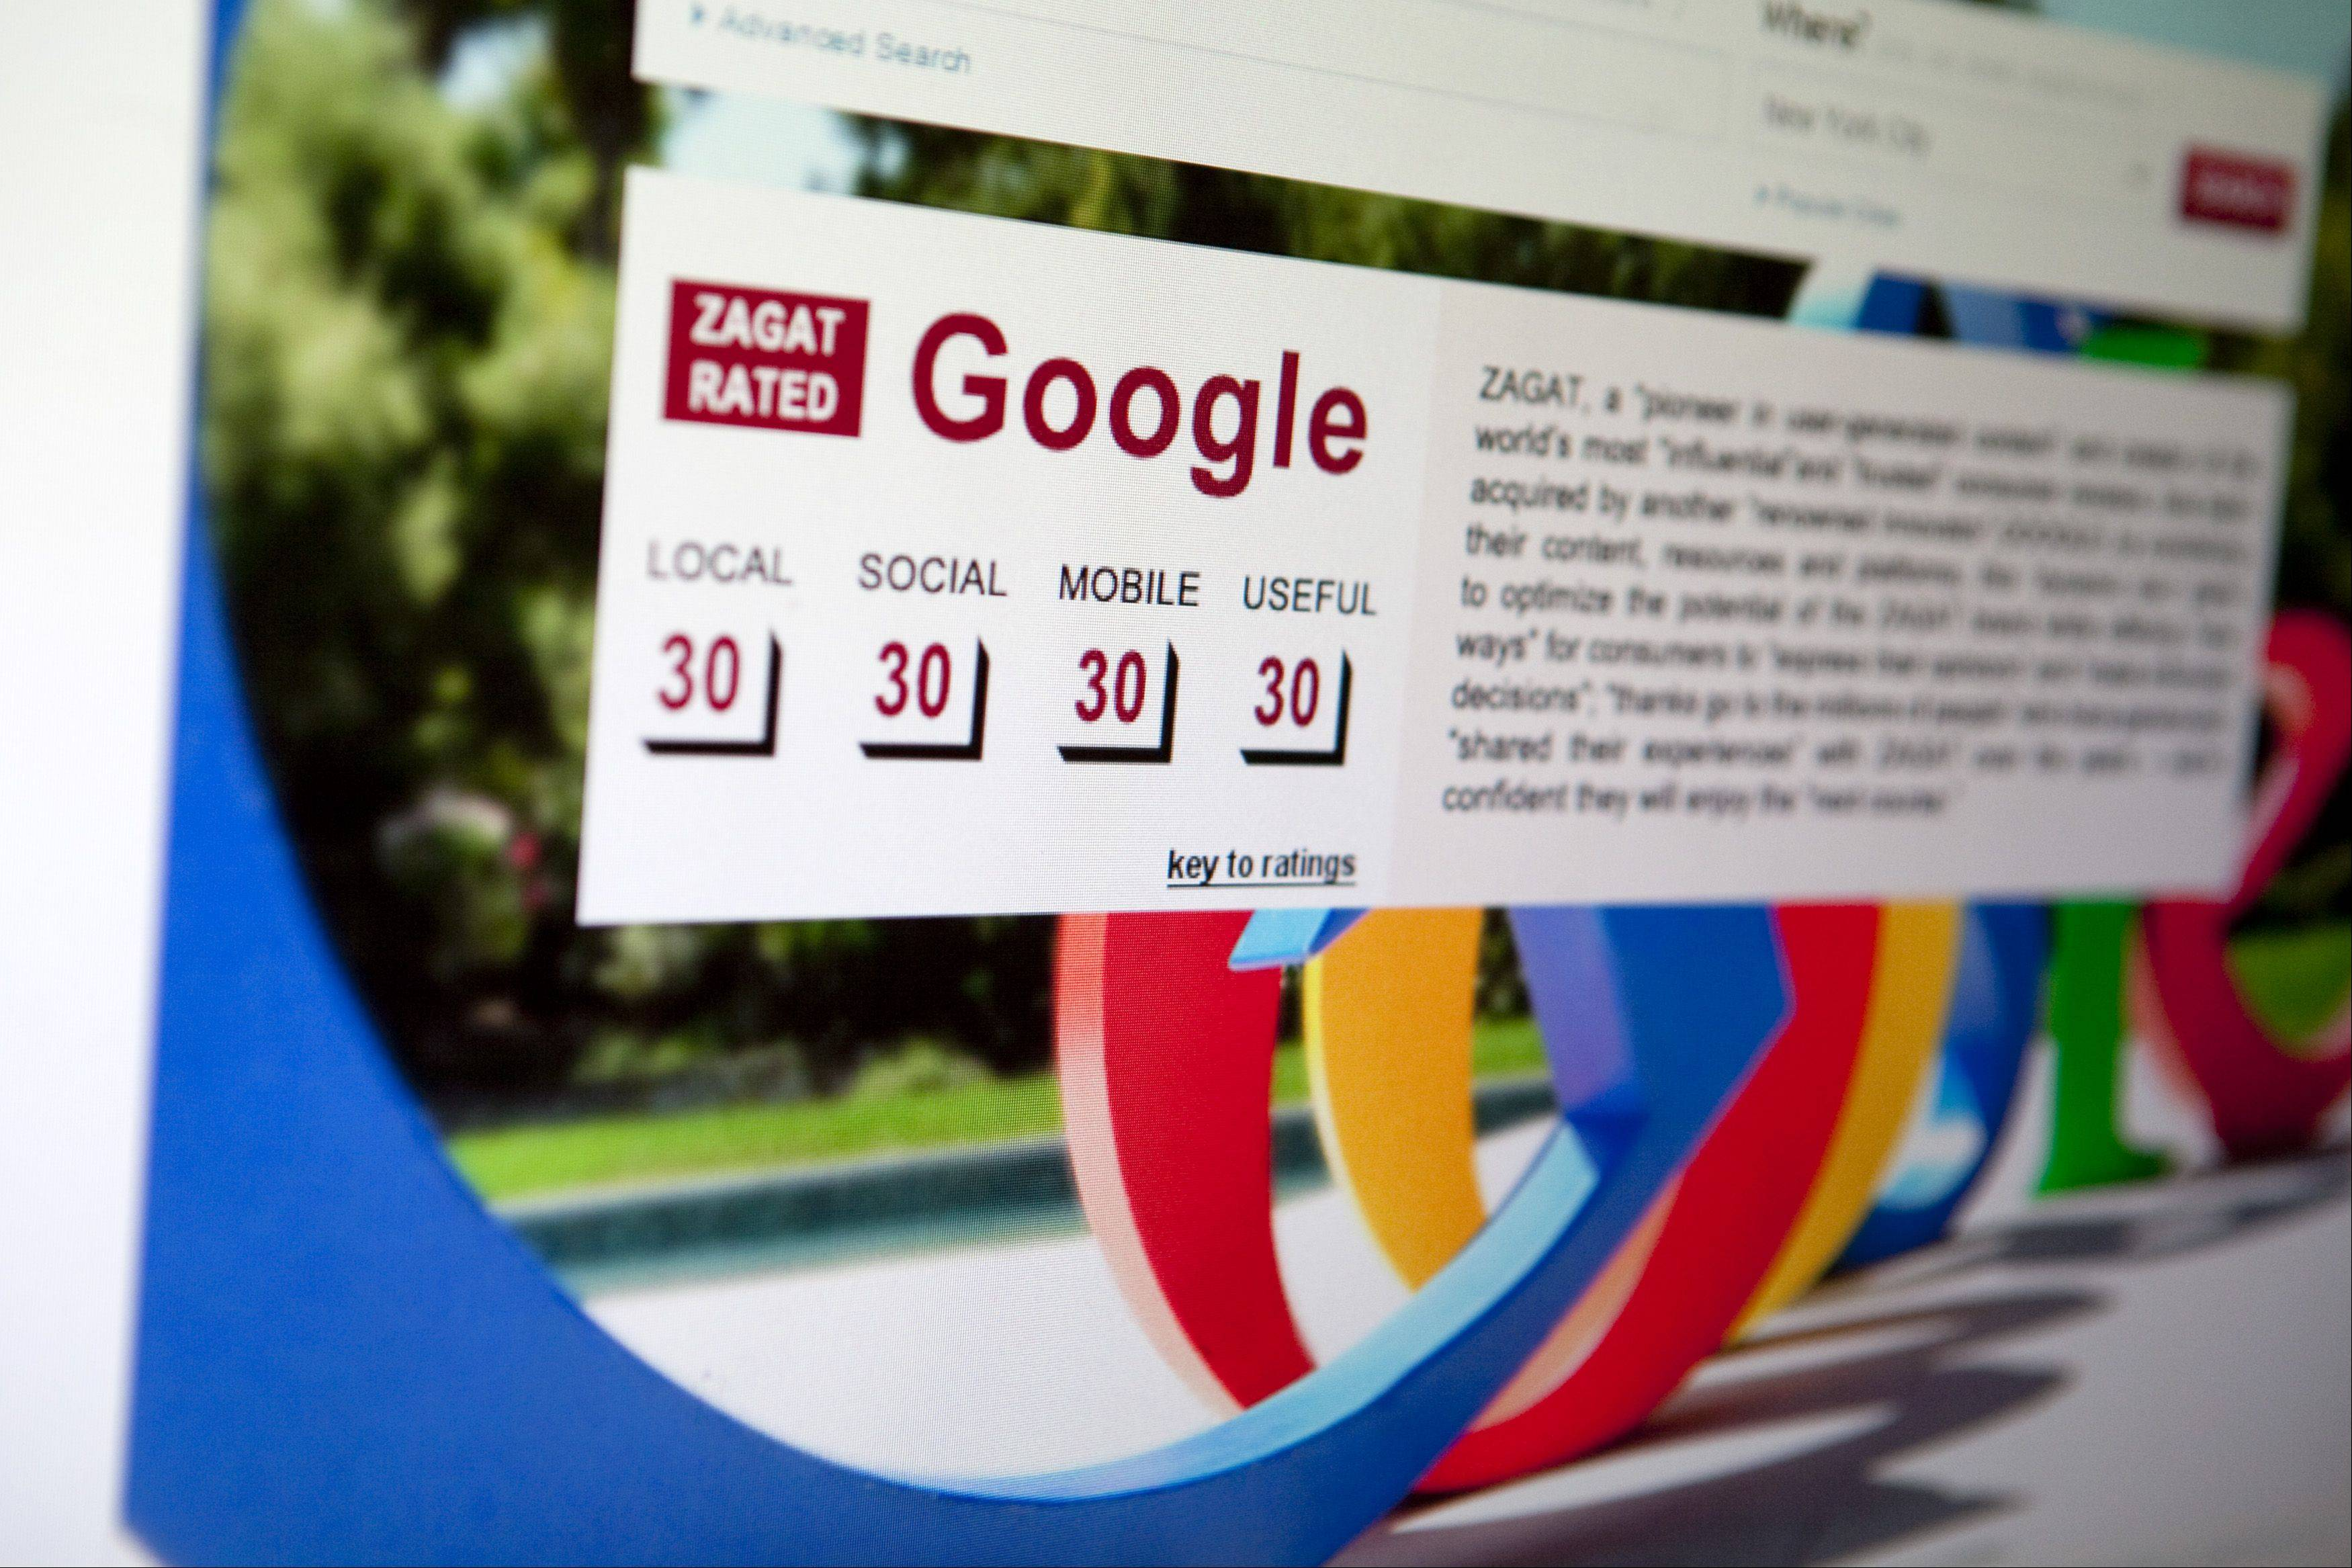 A Google Inc. review is seen on the homepage of Zagat Survey LLC on Thursday. Google has acquired Zagat, the review and ratings service known for its burgundy-colored restaurant guides.